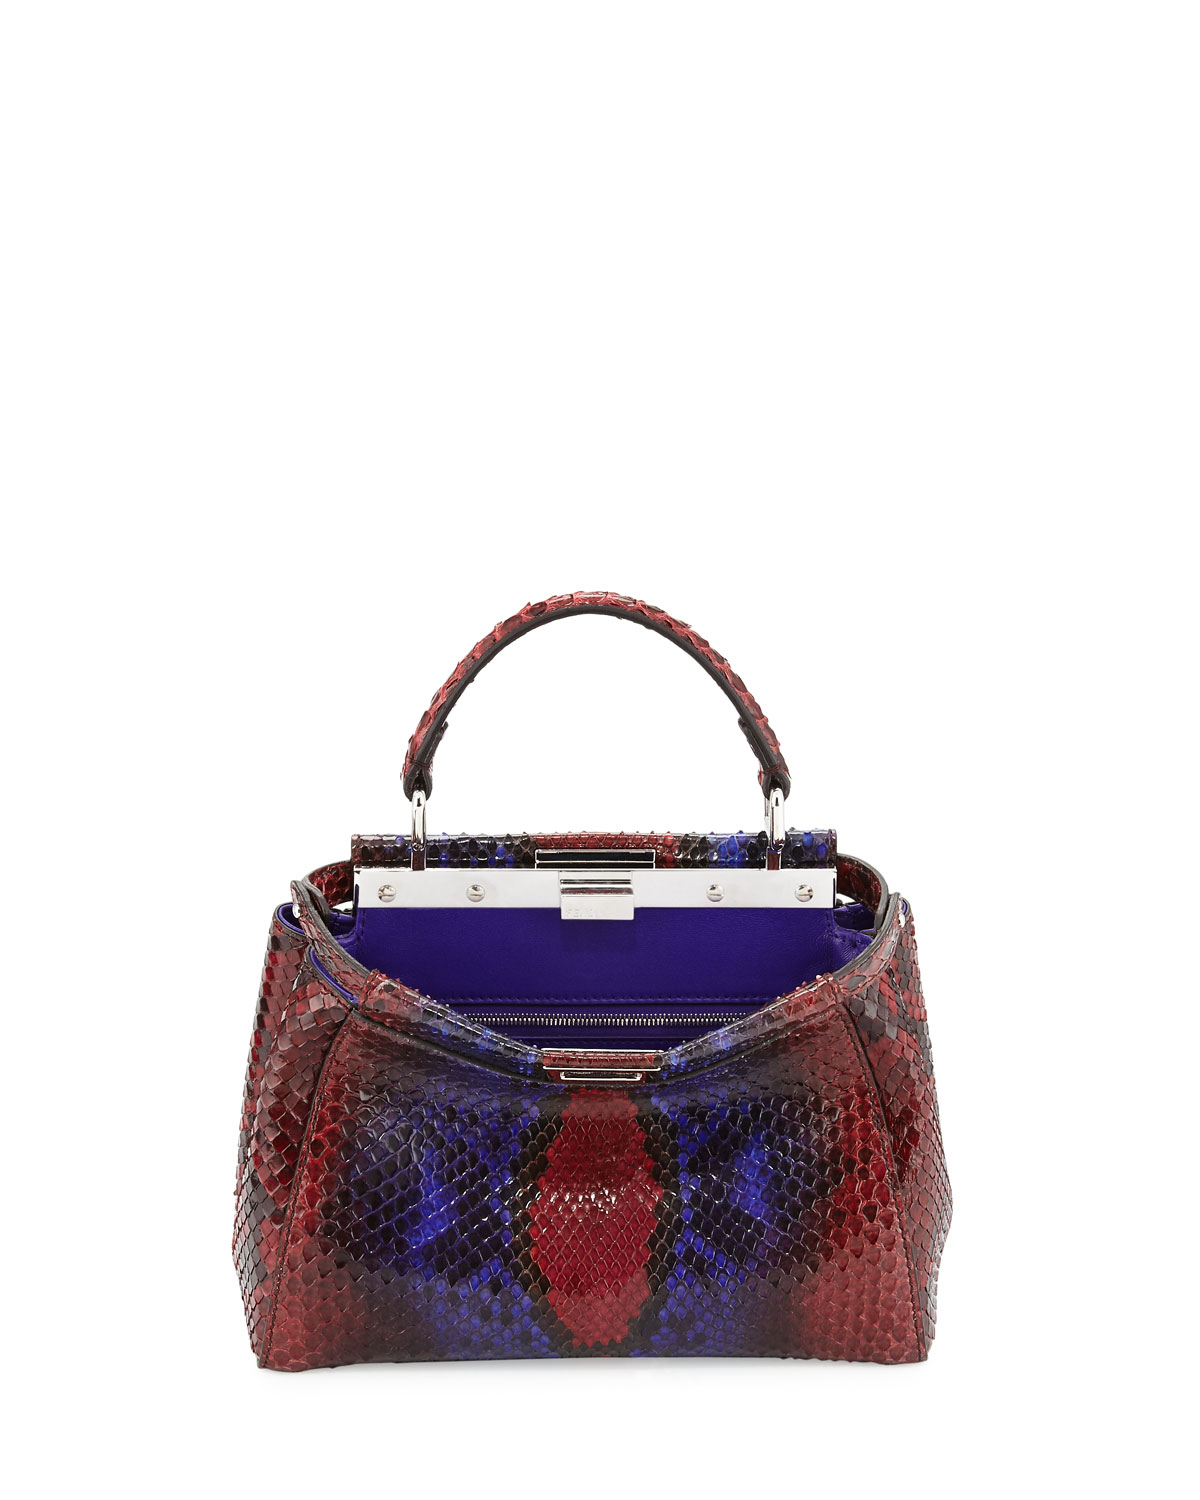 02bb41acb8 Fendi Peekaboo Micro Painted Python Satchel Bag